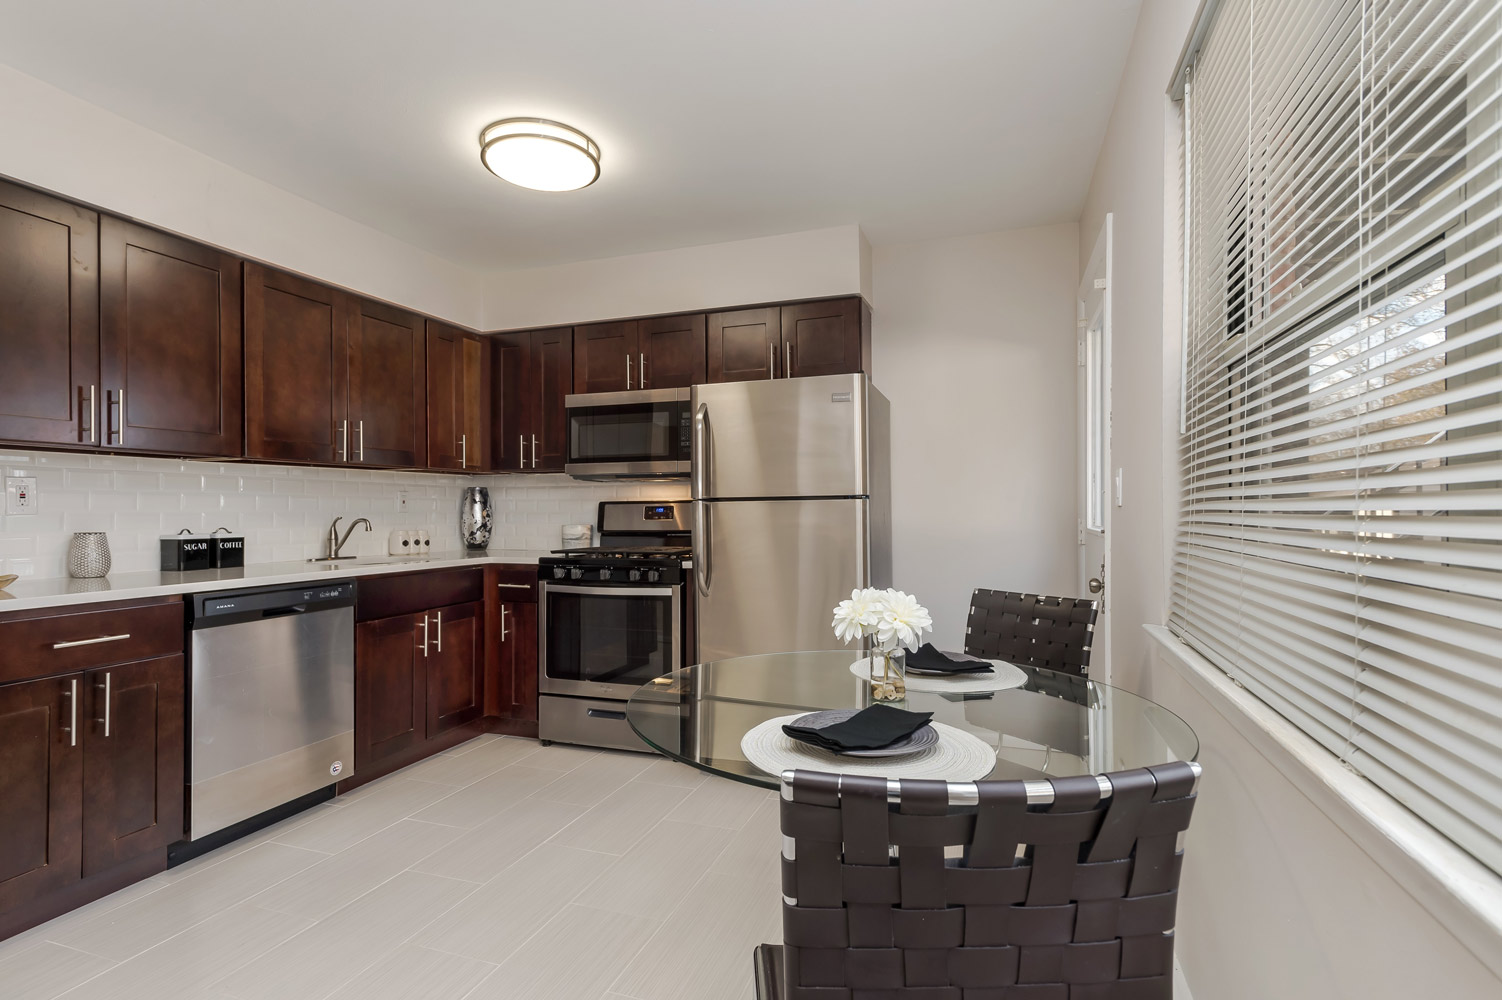 Stainless Steel Appliances at Grandview Gardens Apartments in Edison, New Jersey